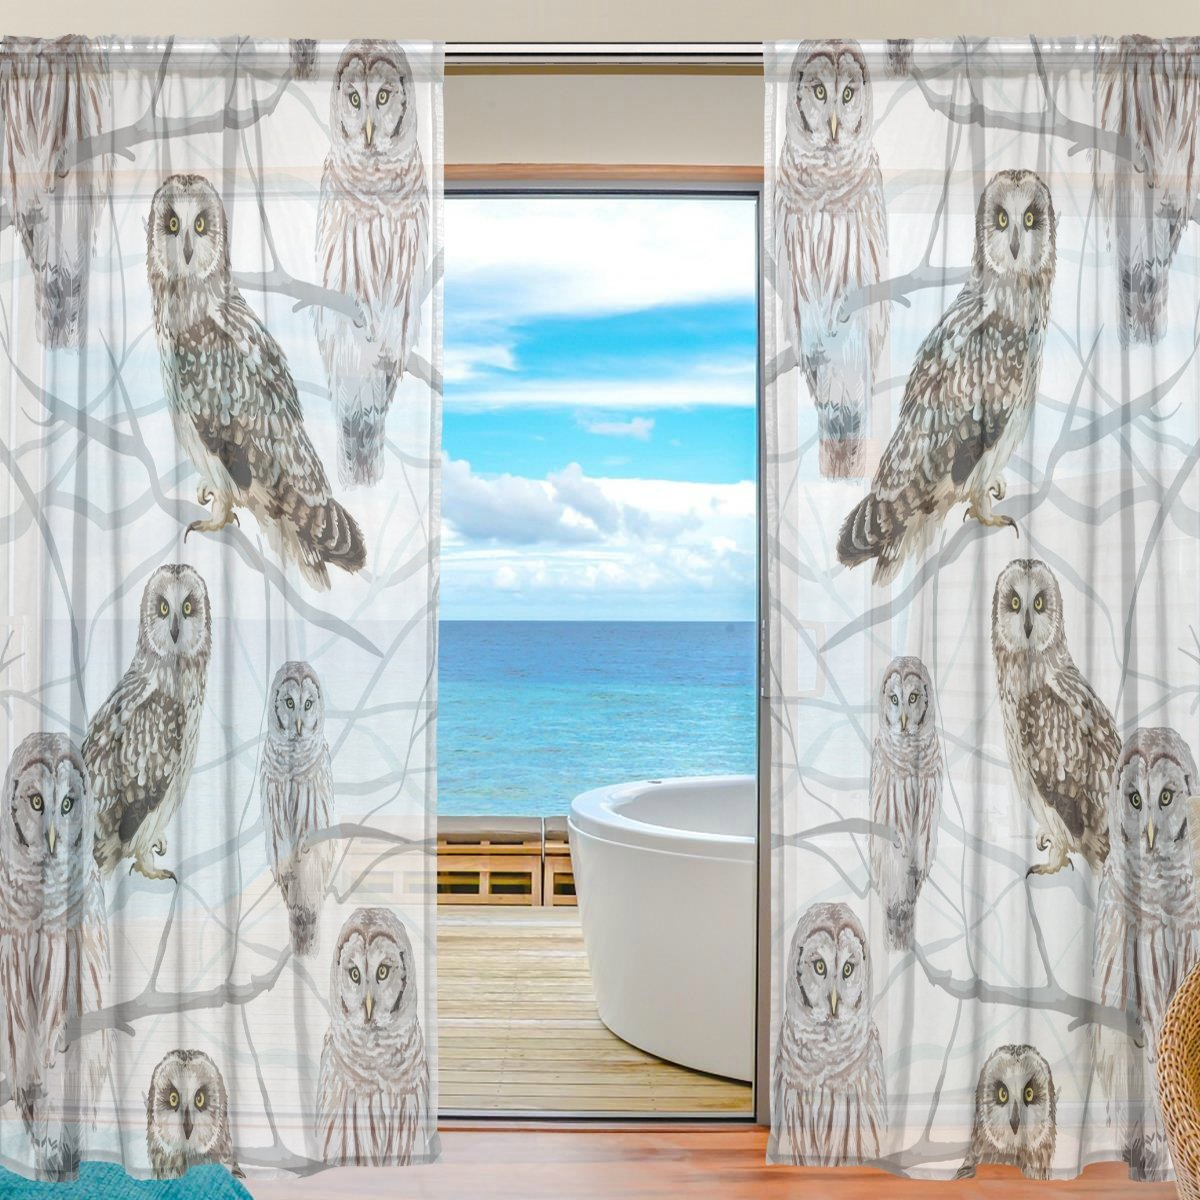 SEULIFE Window Sheer Curtain, Animal Owl Bird on Tree Branch Voile Curtain Drapes for Door Kitchen Living Room Bedroom 55x78 inches 2 Panels by SEULIFE